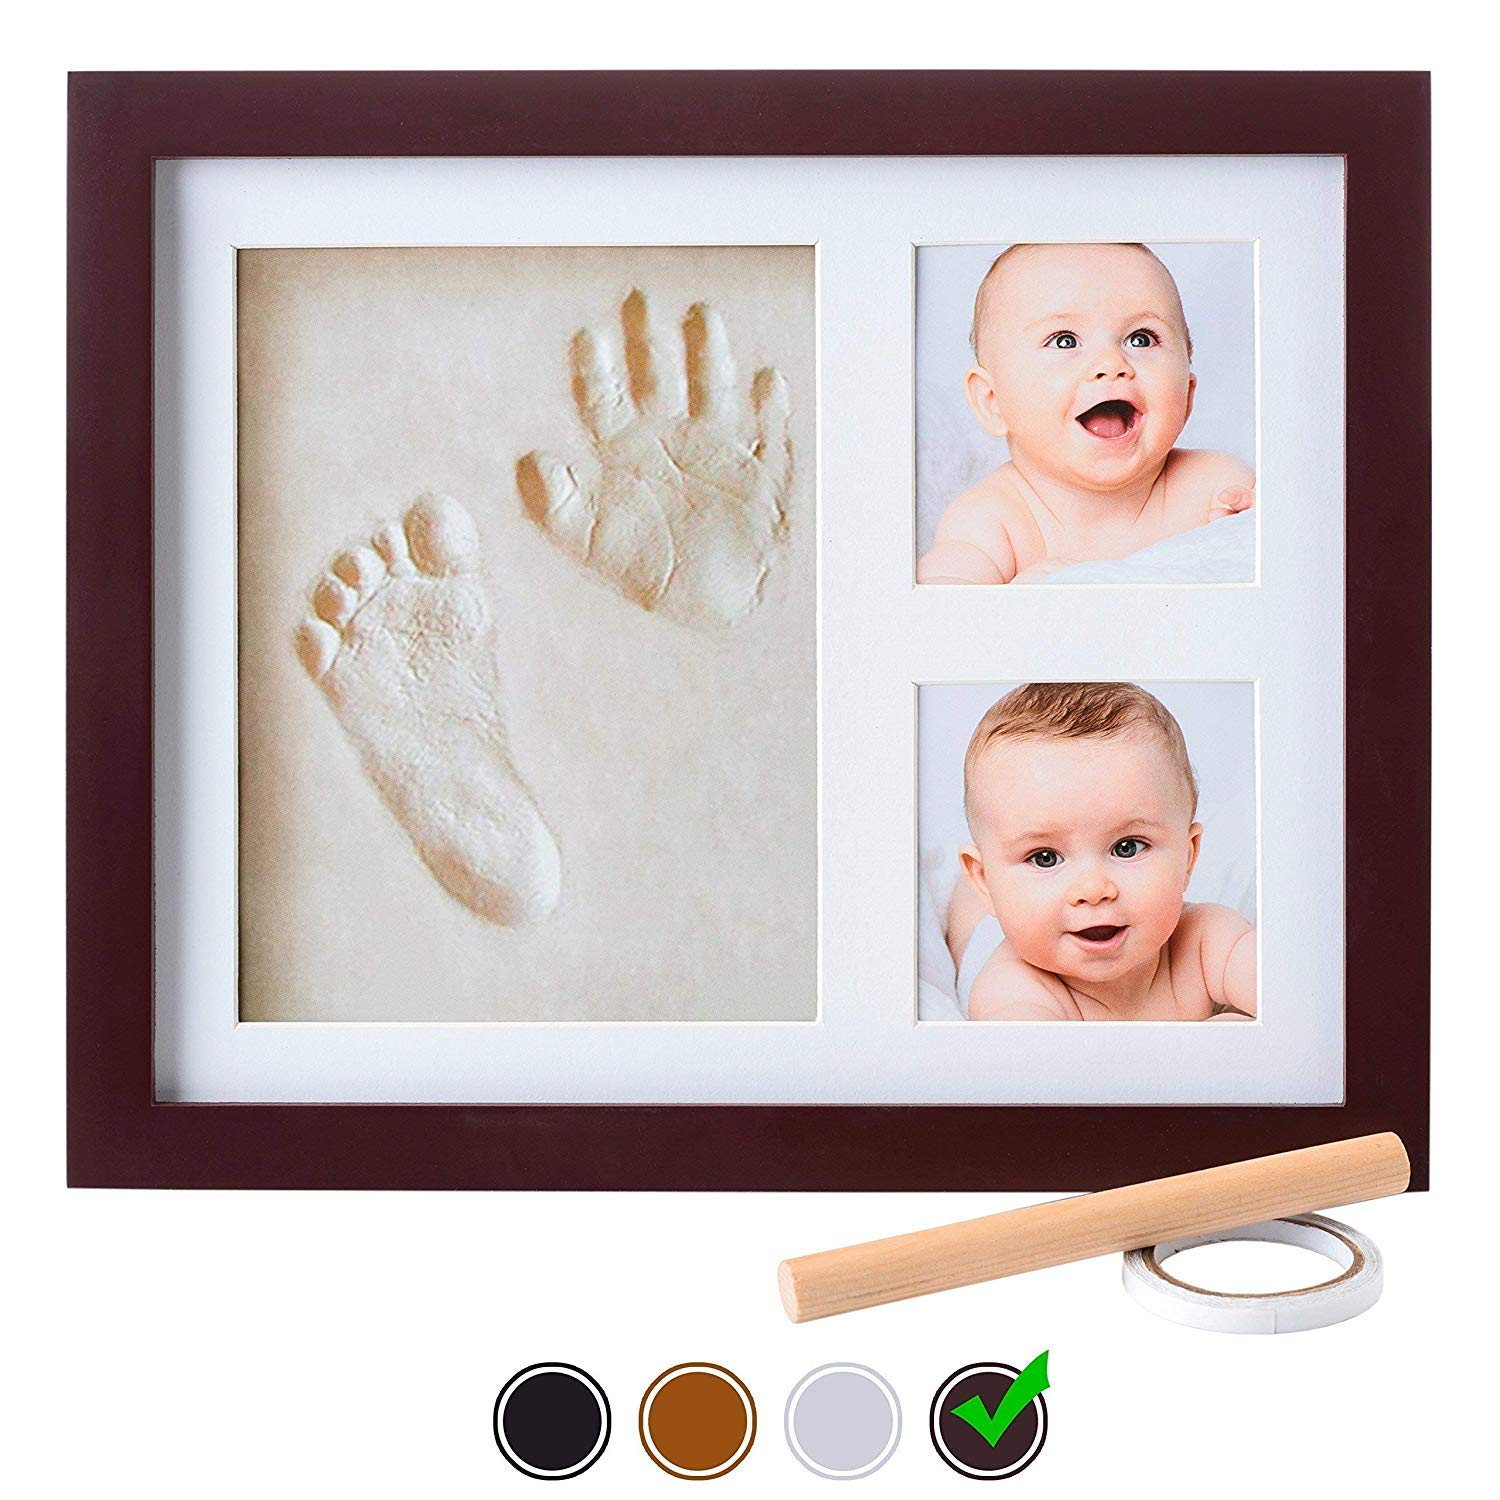 Clay Best for Baby Footprint Kit or Baby Handprint Kit as Baby Boy Gift or Baby Girl Gift for Baby Shower Gift. White Wooden Frame and Glass Baby Hand /& Footprint Kit by Mummy Joy Ltd